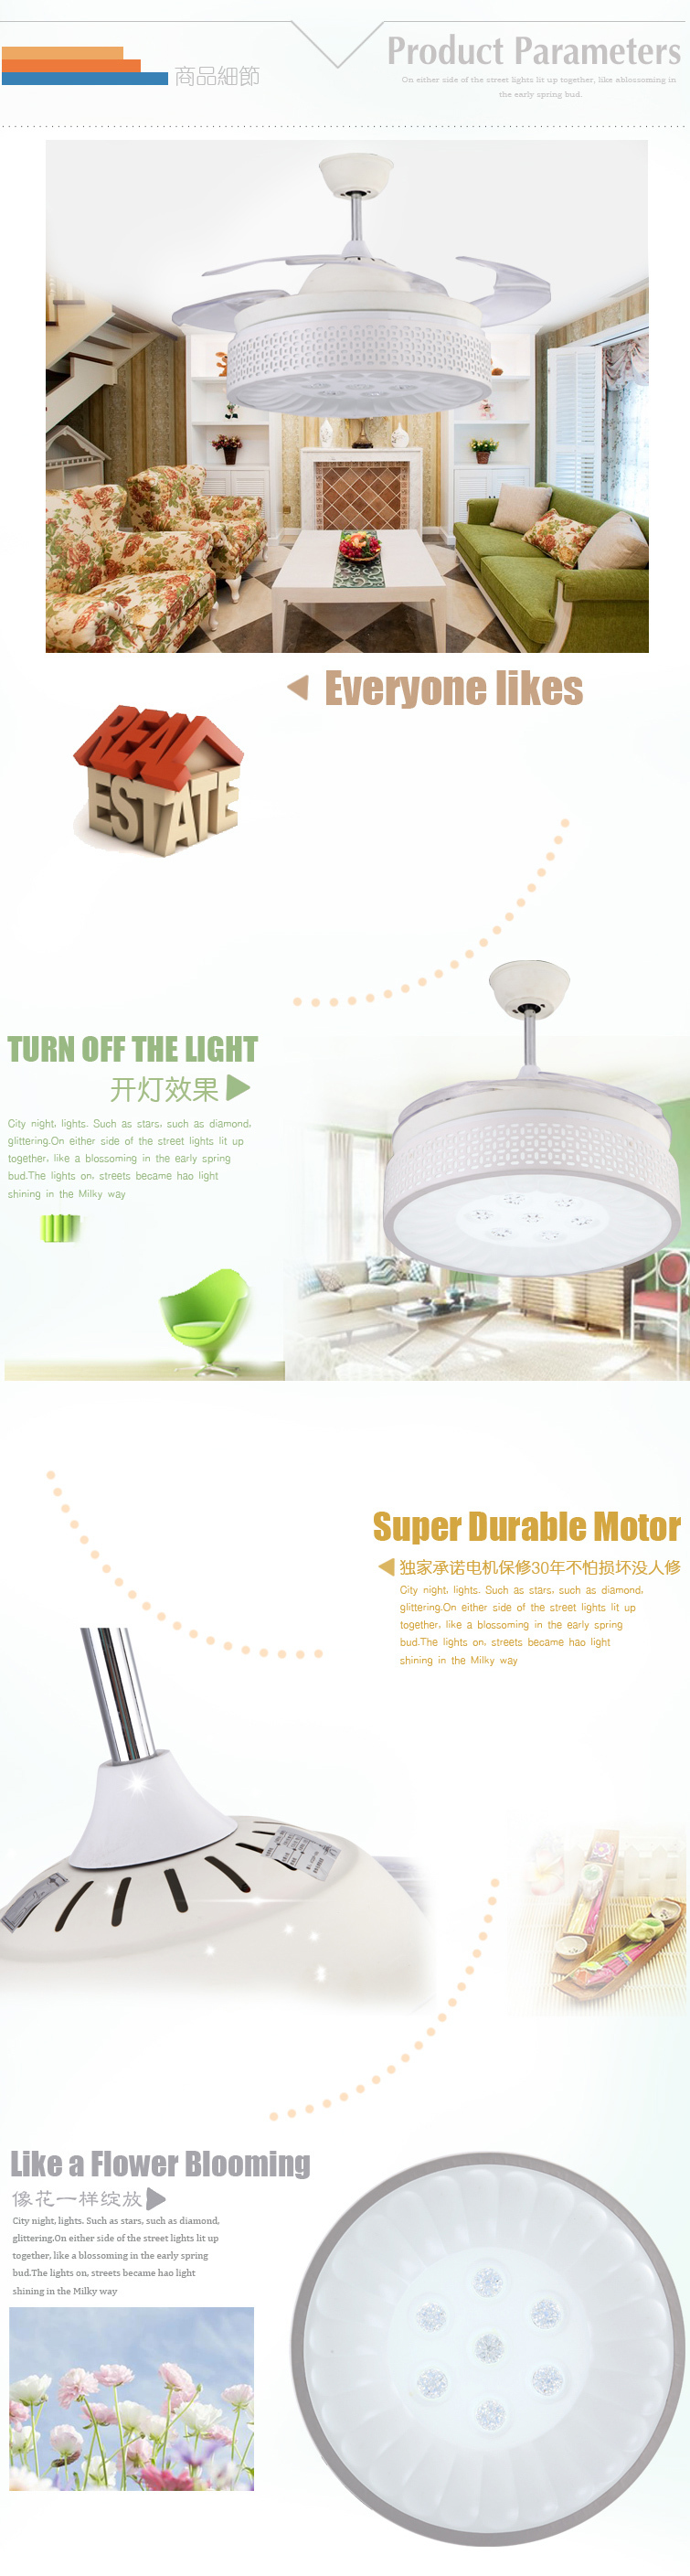 Blooming Flower Ceiling Fan Cheap Thousands Customers Consider